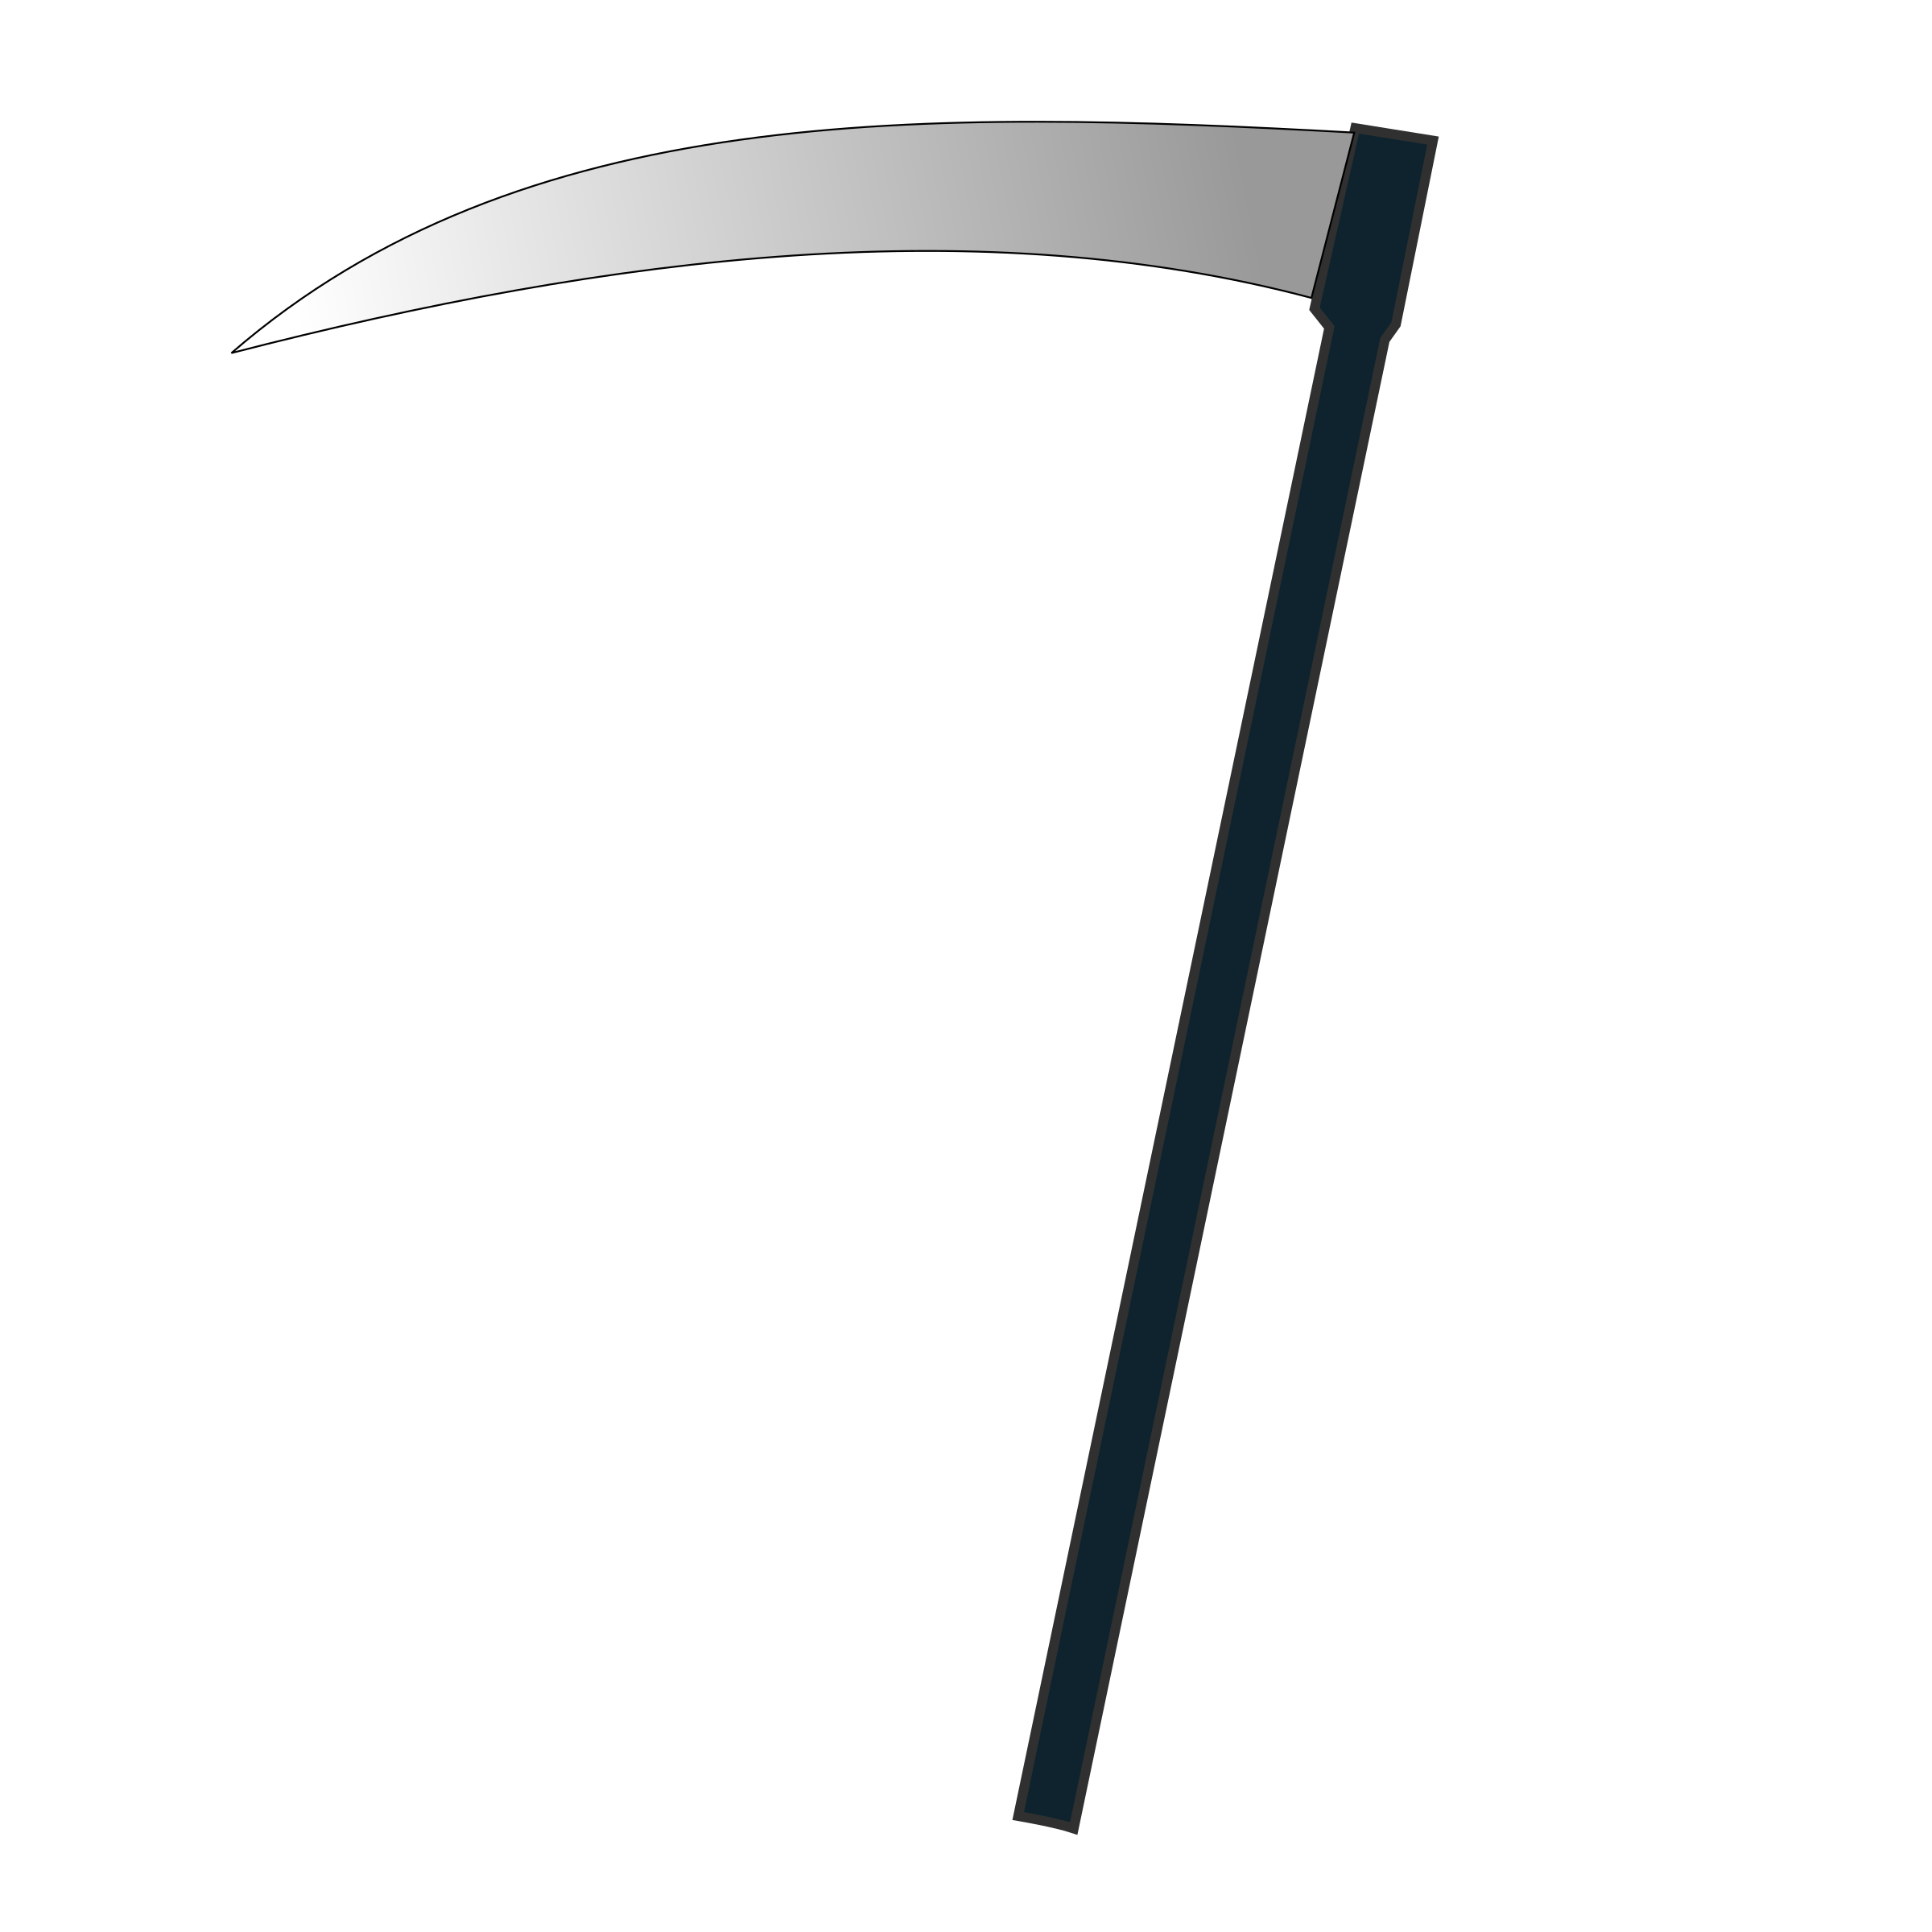 Transparent reaper scythe. X icon icons png